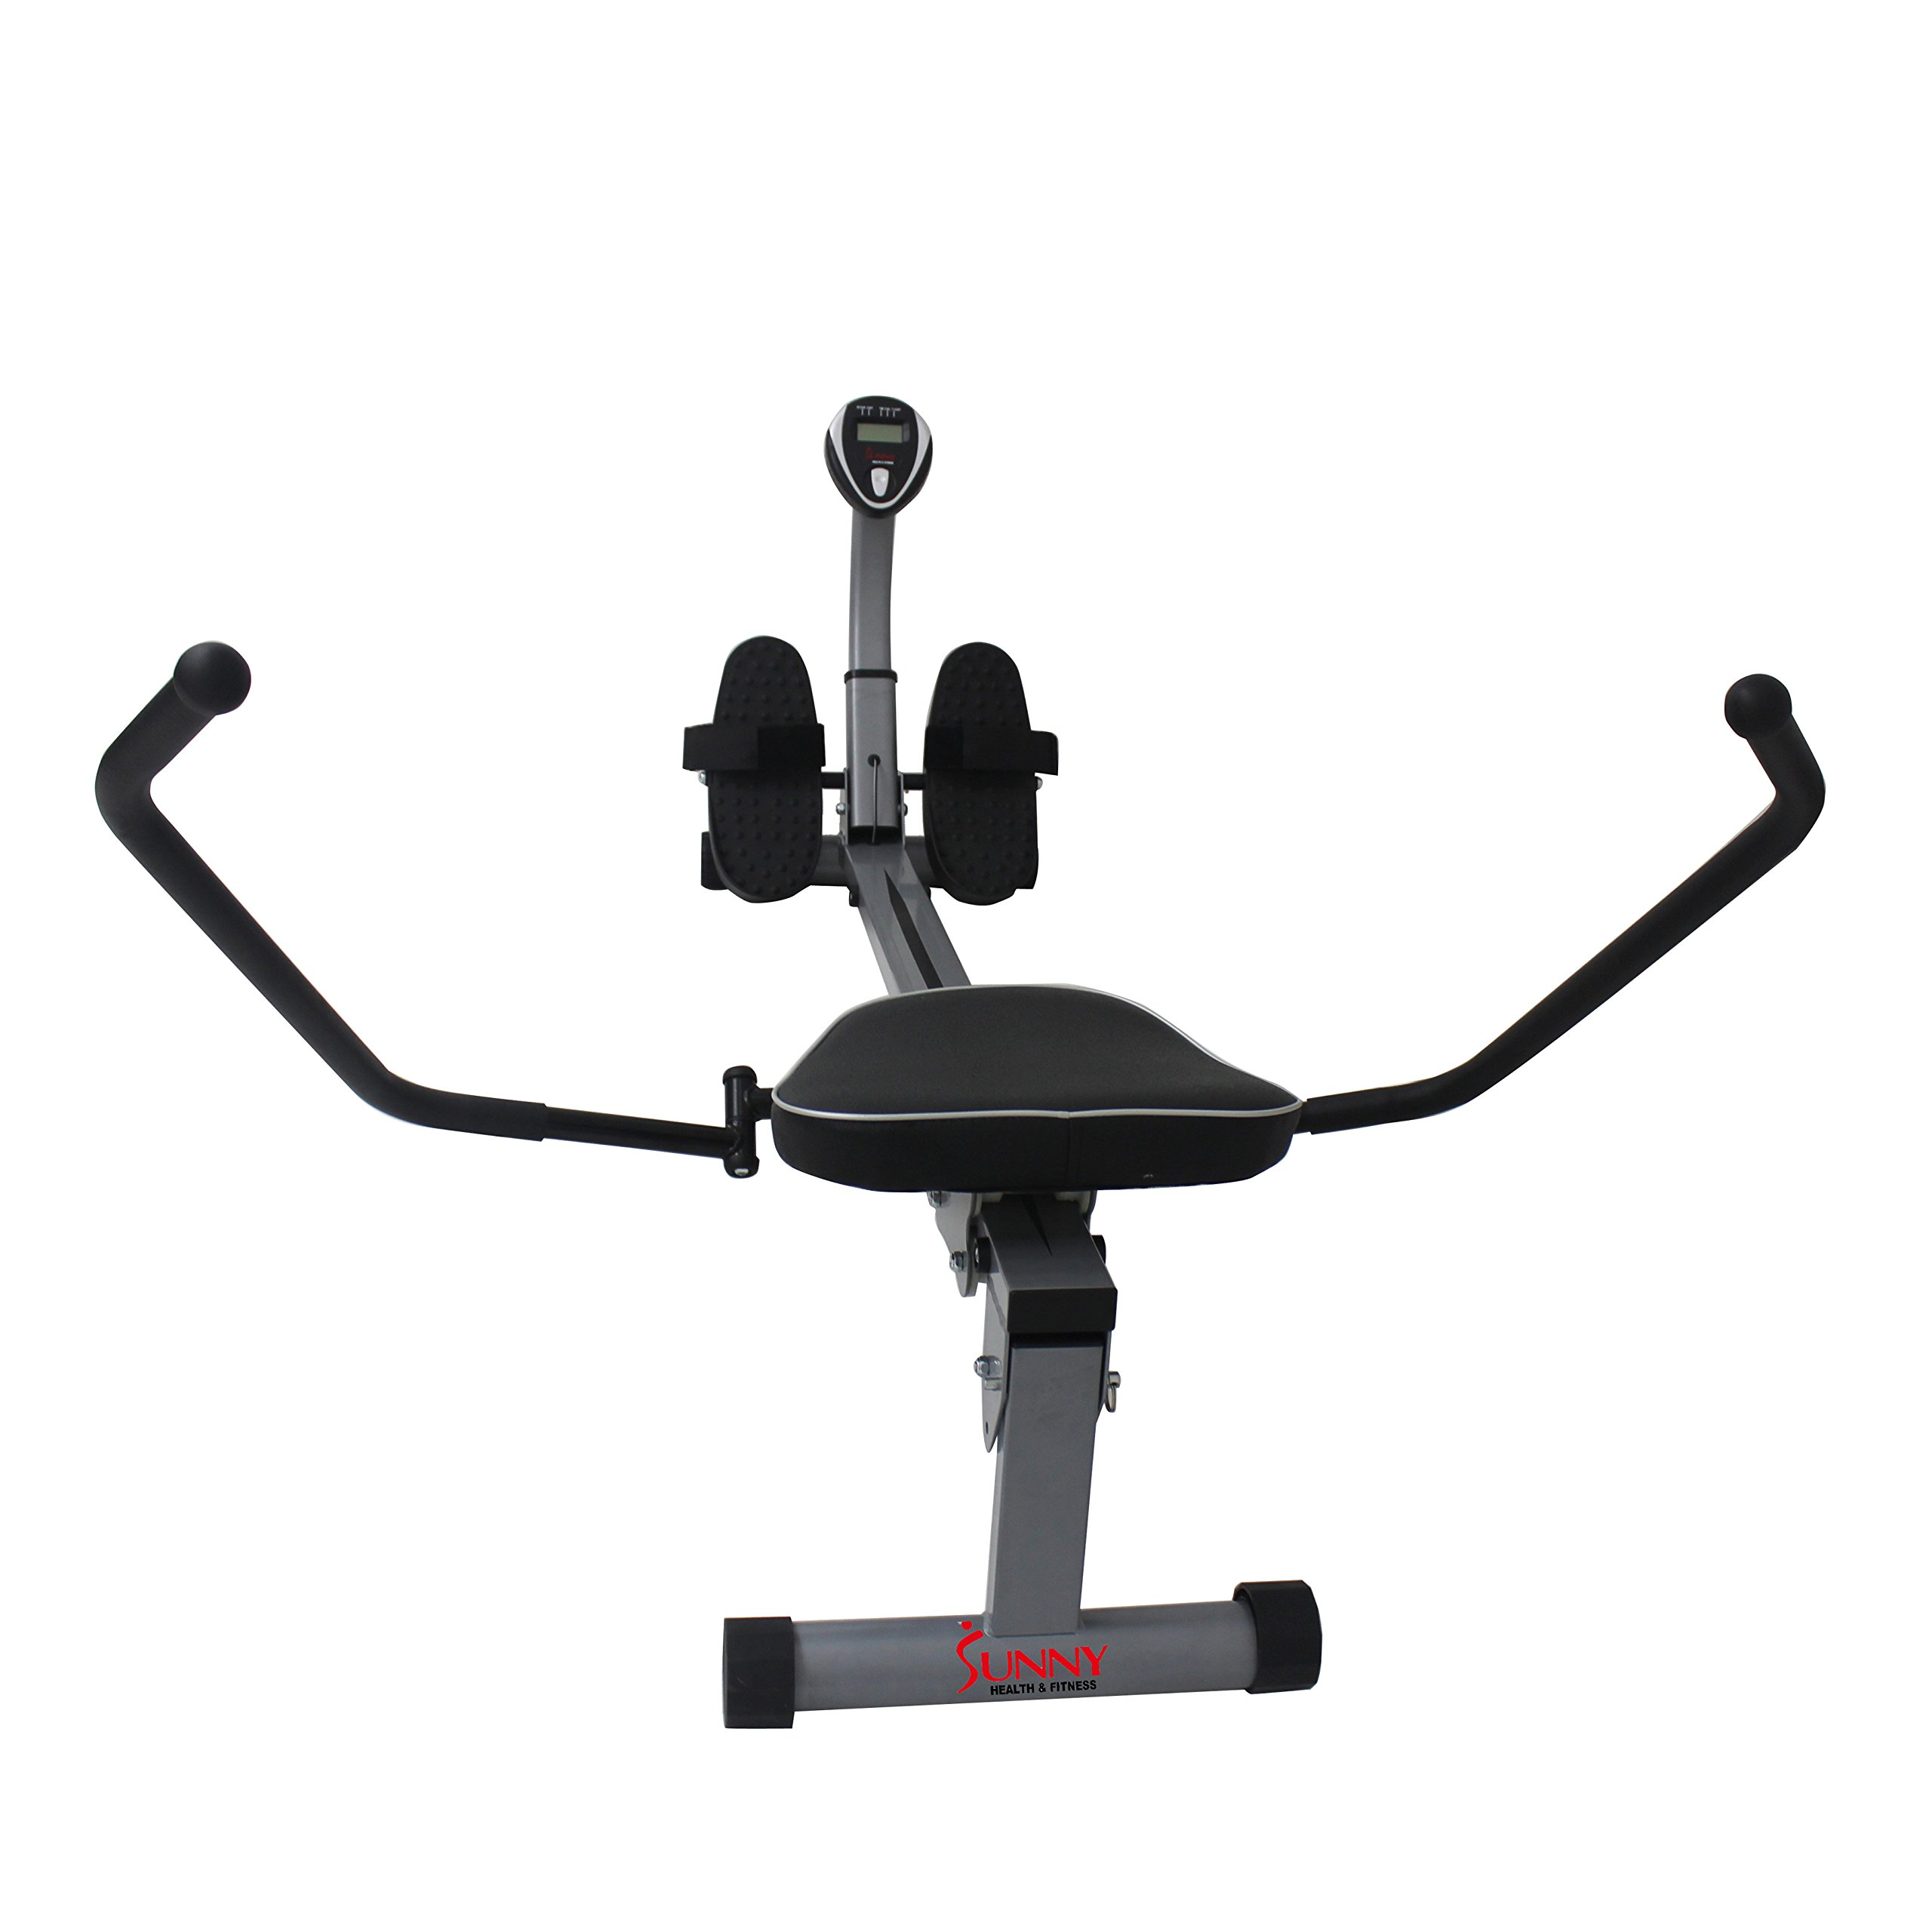 Sunny Health & Fitness SF-RW1410 Rowing Machine Rower with Full Motion Arms and LCD Monitor by Sunny Health & Fitness (Image #11)